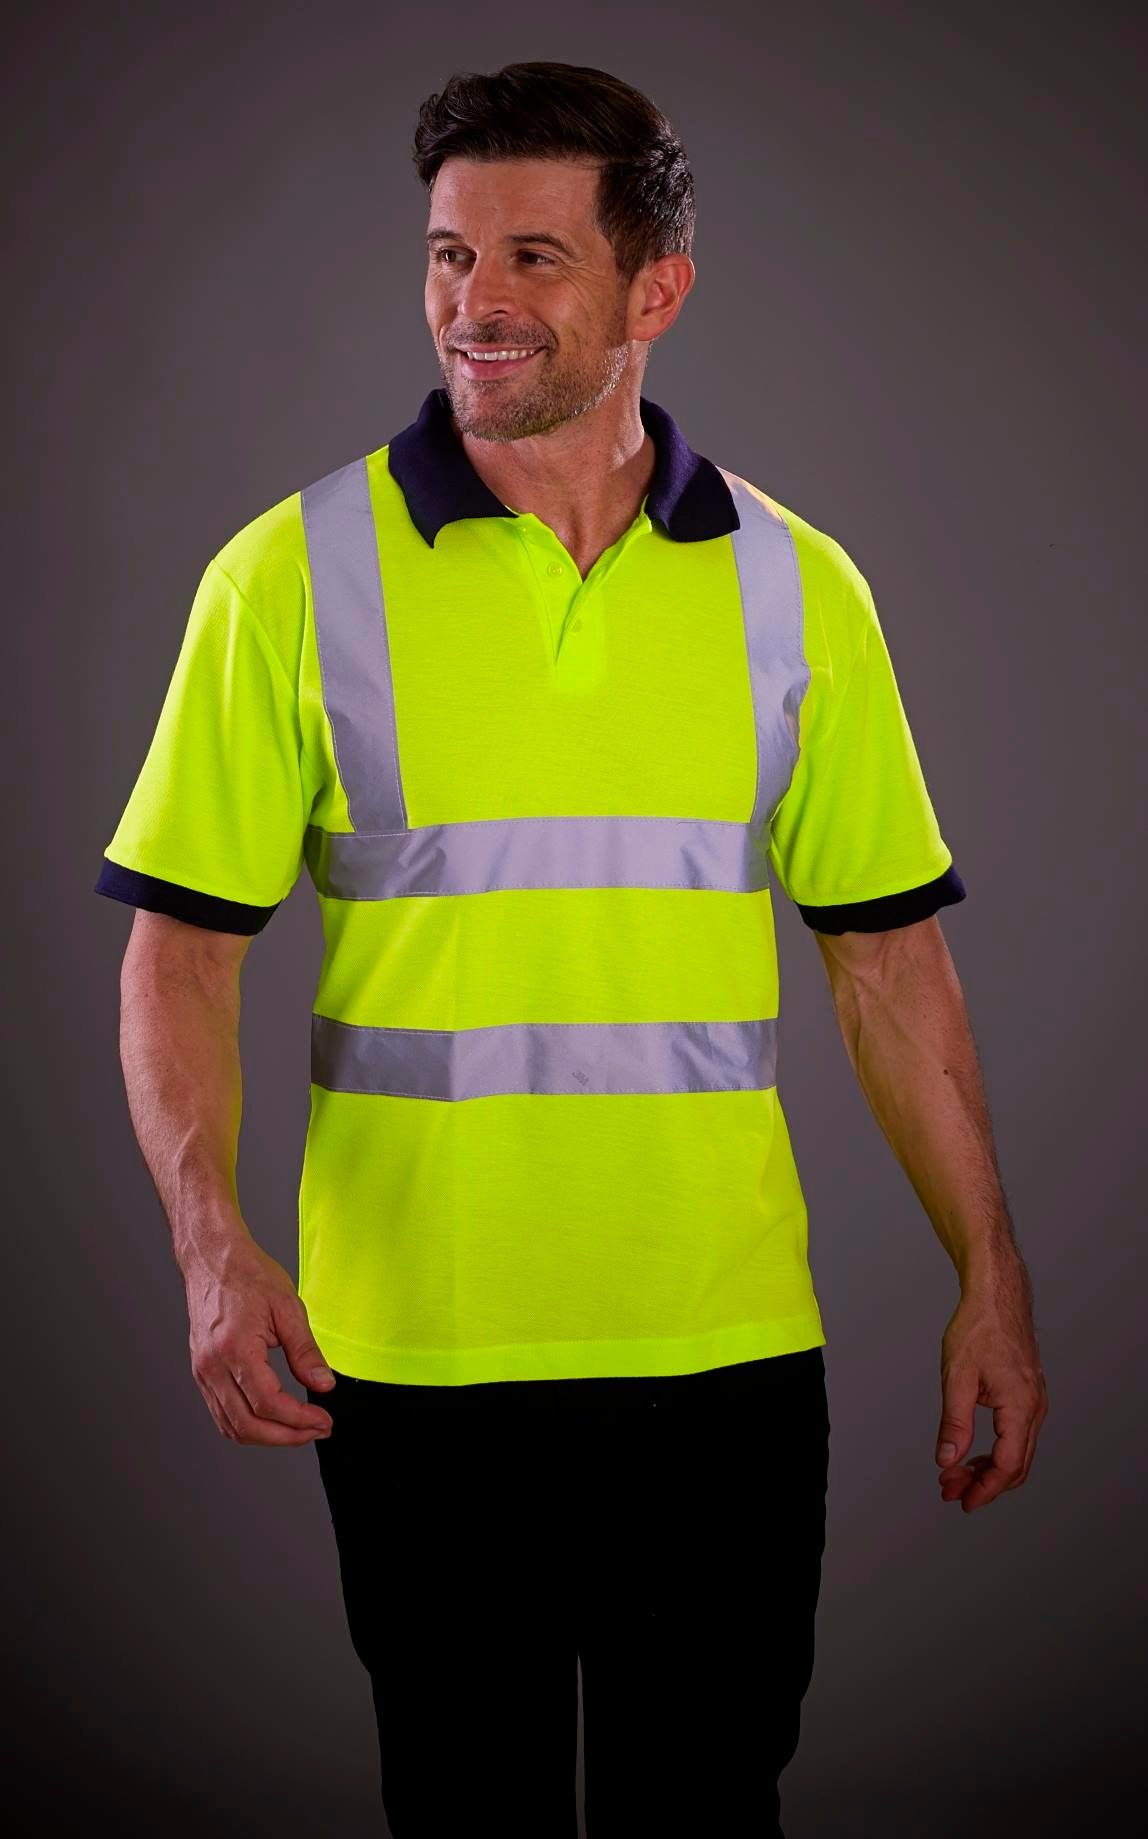 Custom Printed Hi-Vis Short Sleeve Polo Shirt (HVJ210), yellow, www.ontimeprint.co.uk